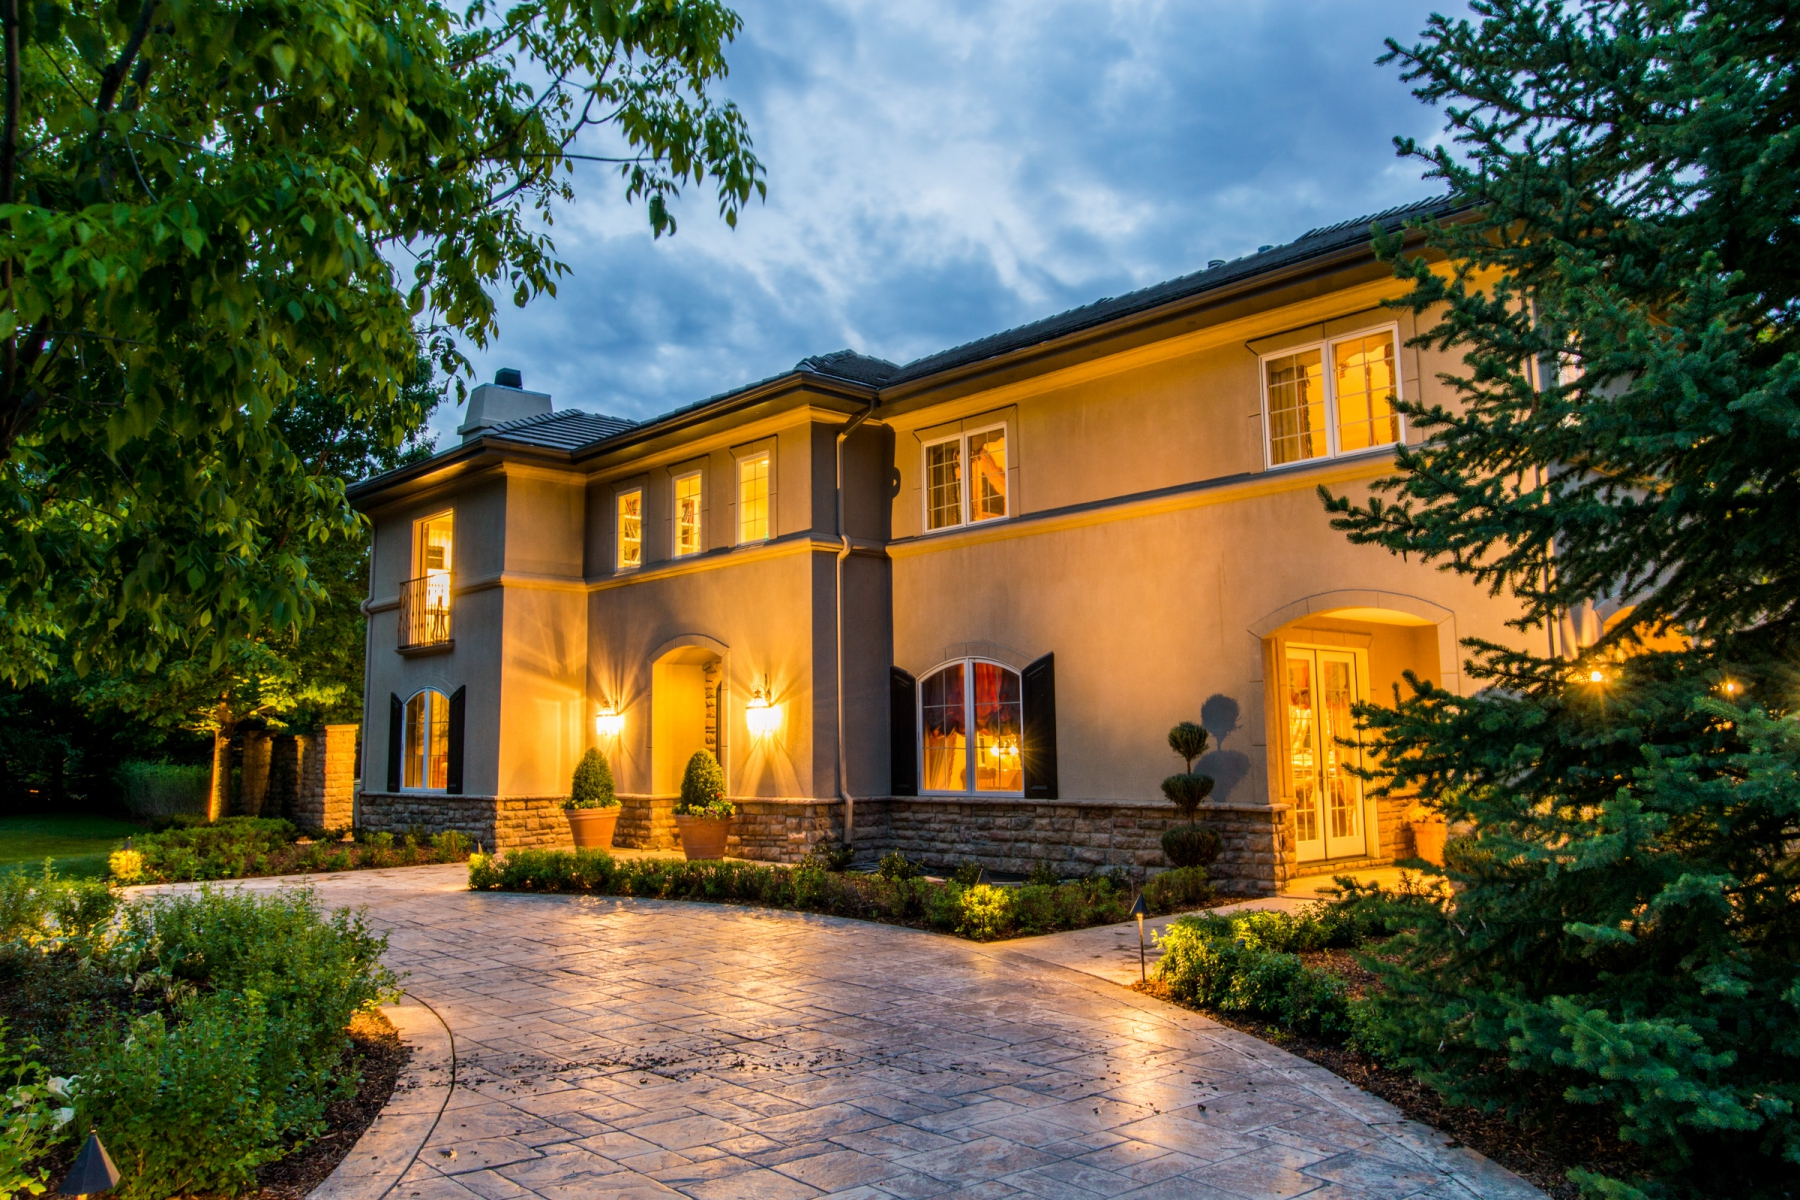 Single Family Home for Sale at Buell Mansion 8 Gray Owl Road Cherry Hills Village, Colorado 80113 United States